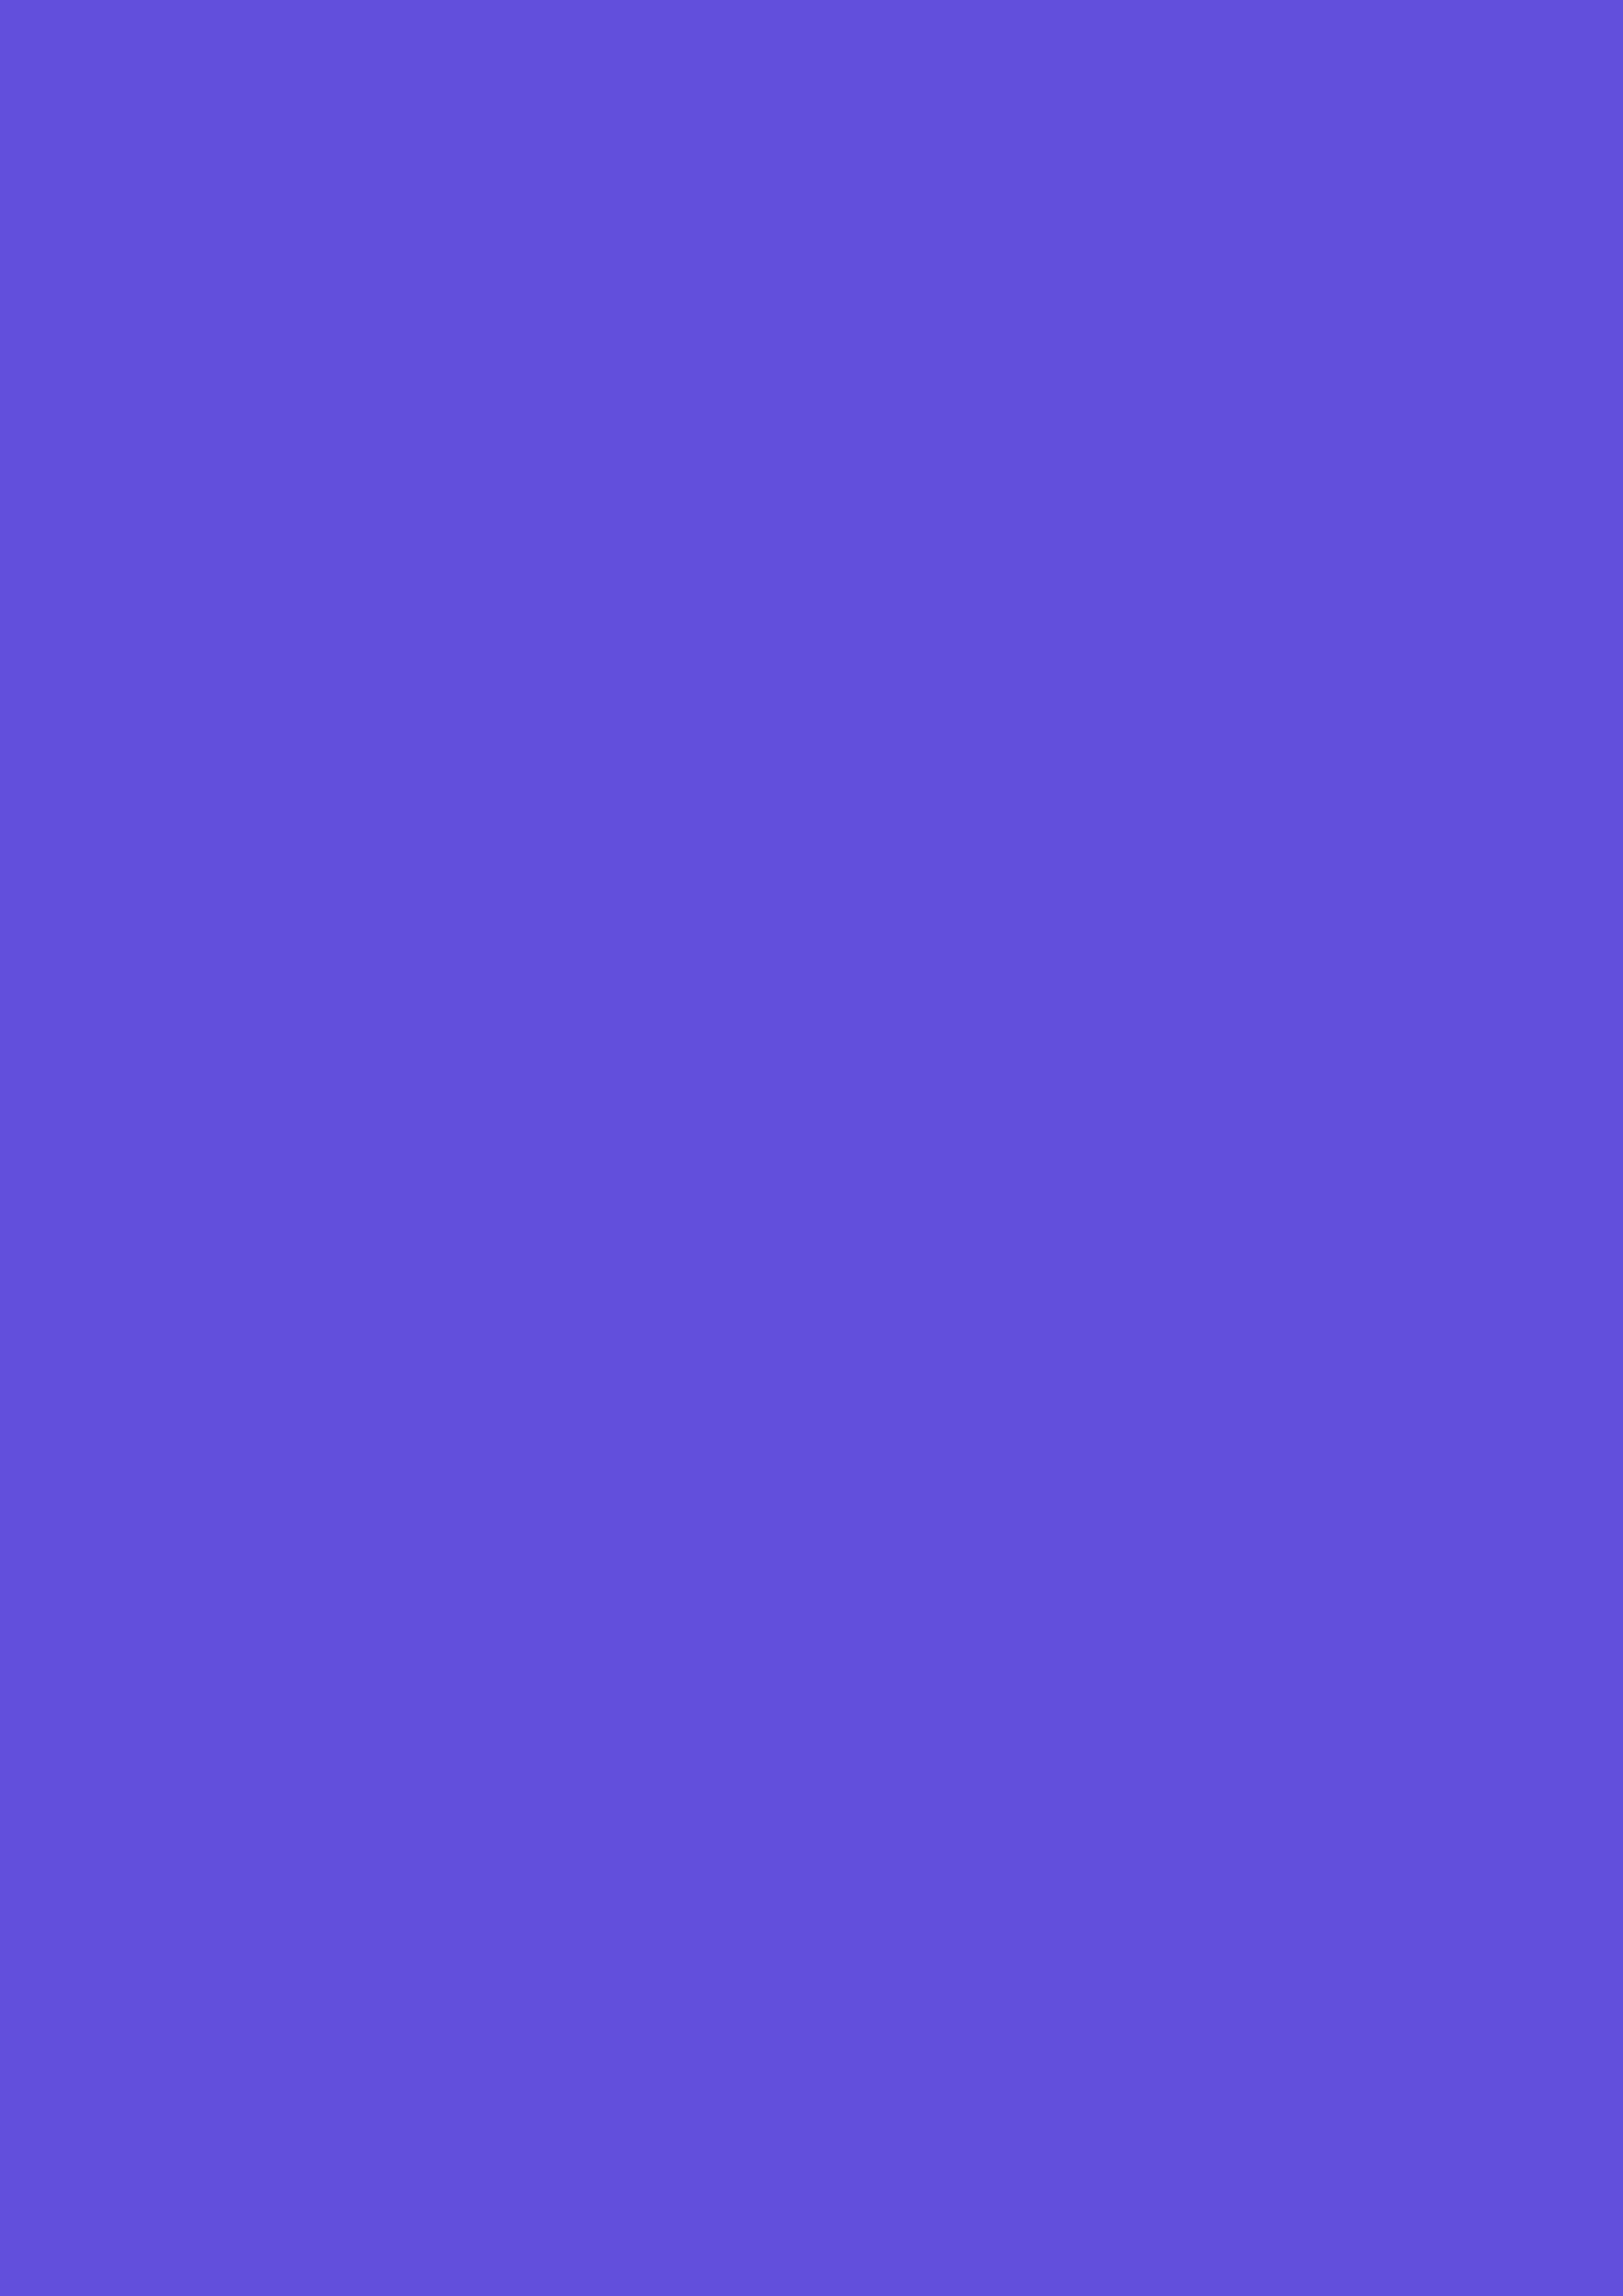 2480x3508 Majorelle Blue Solid Color Background